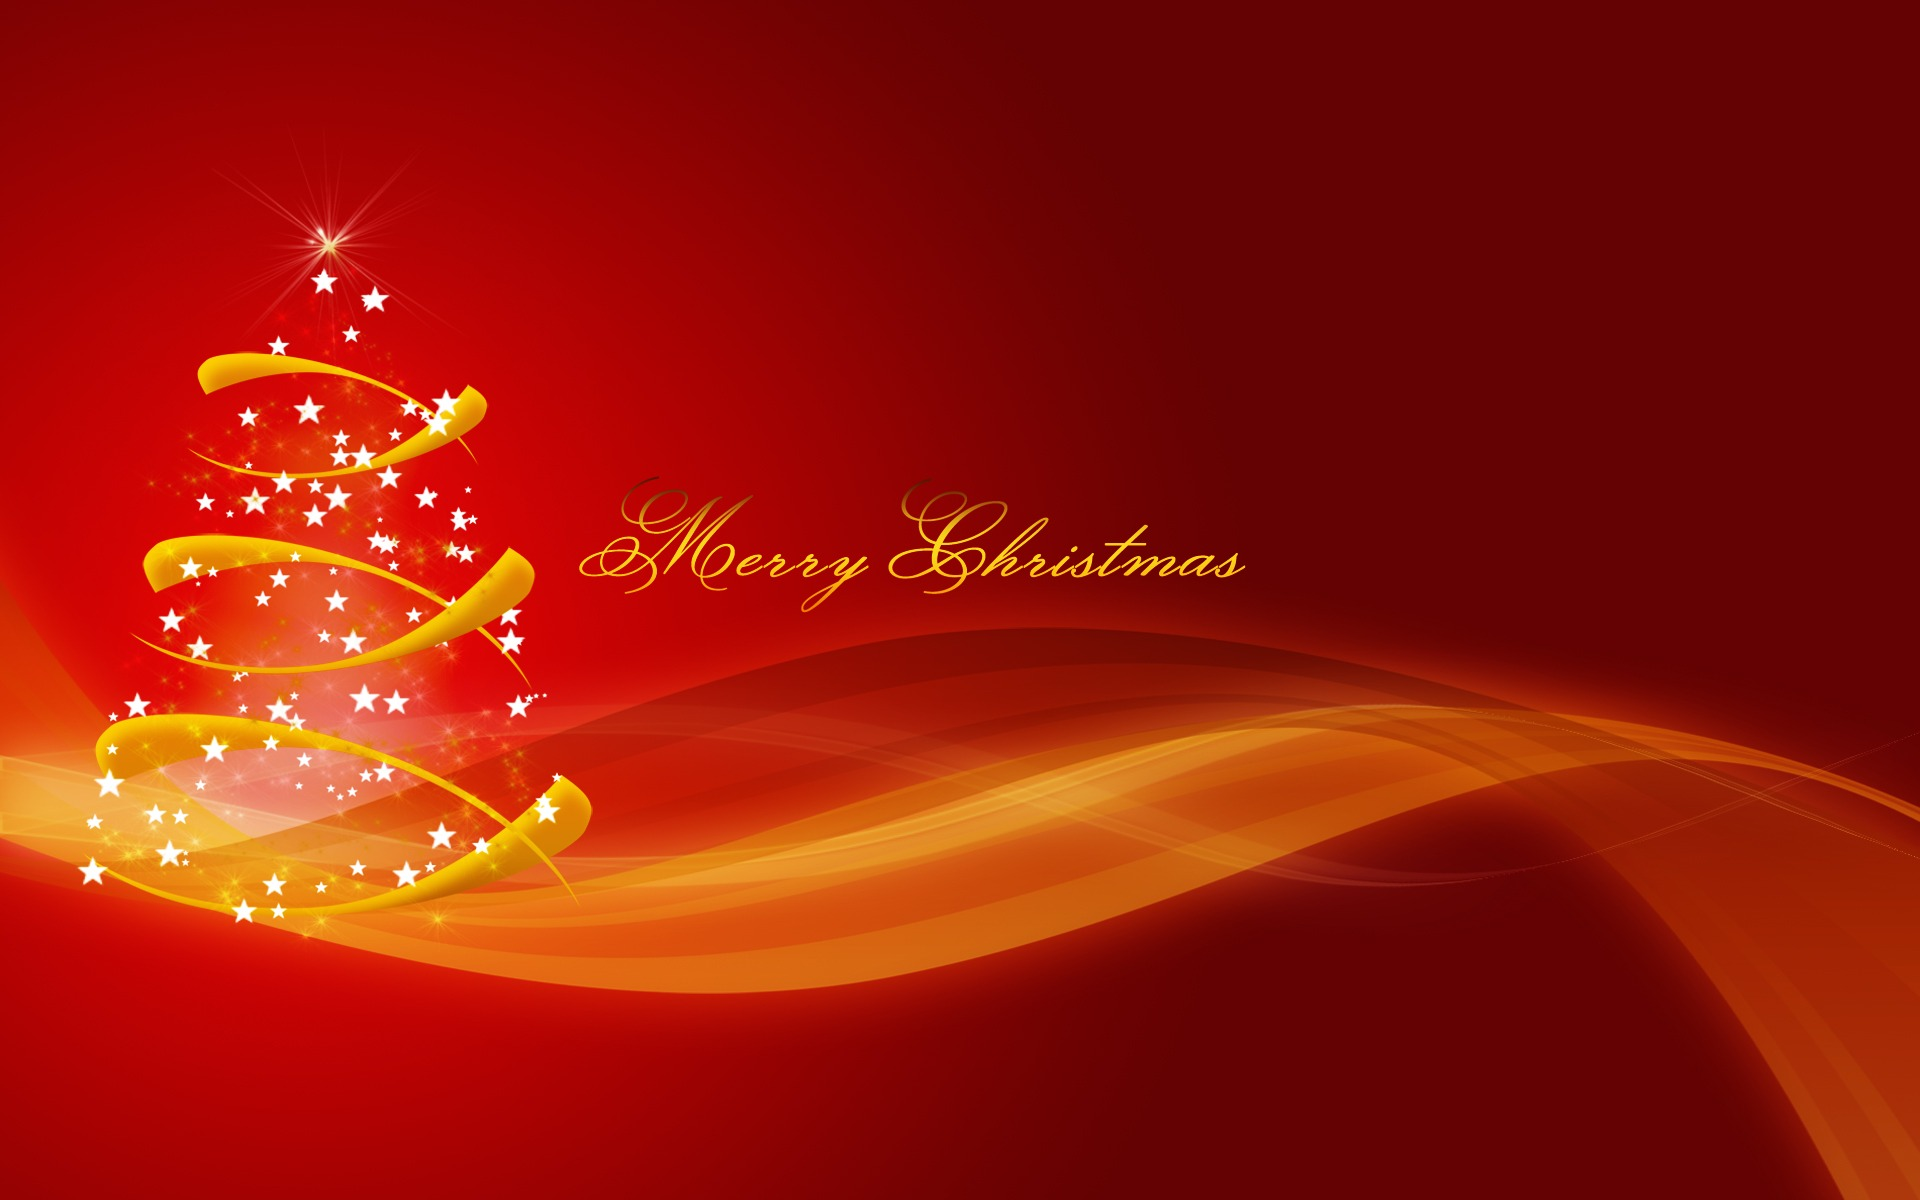 Merry Christmas Com Pictures Wallpapers